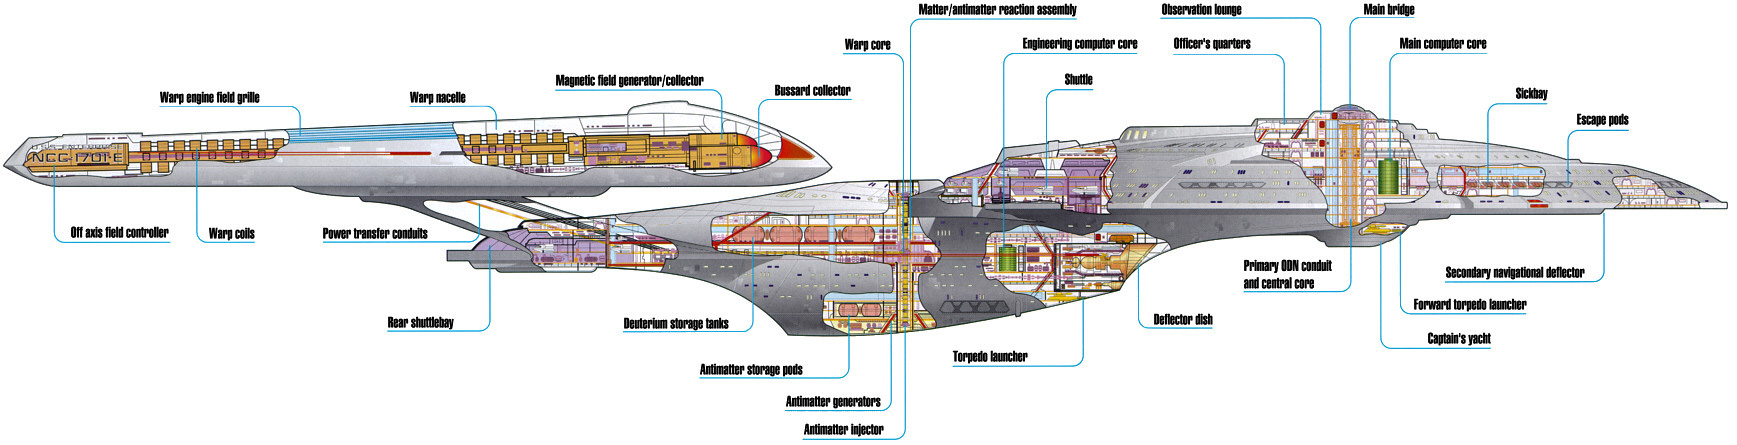 actd  advanced starship design bureau  sovereignclass specs, schematic